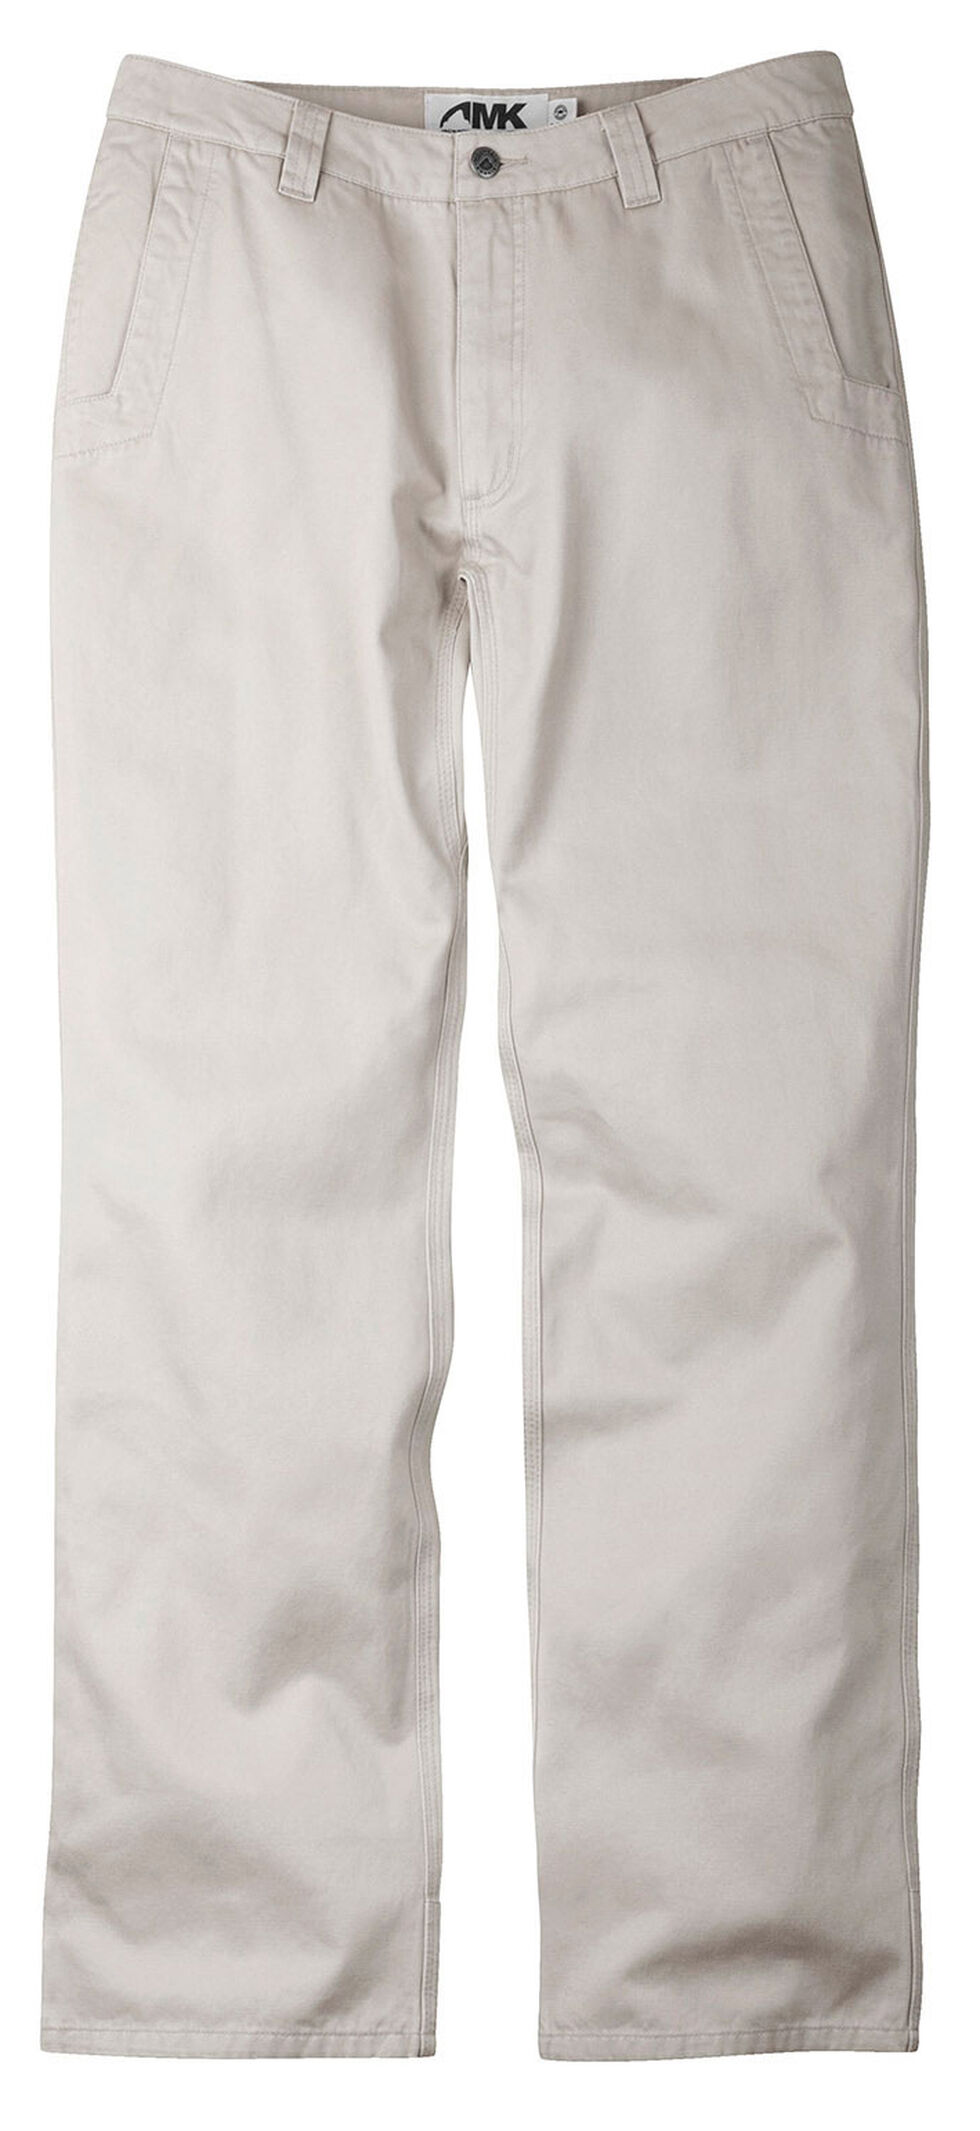 Mountain Khakis Men's Slate Teton Slim Fit Pants, Slate, hi-res